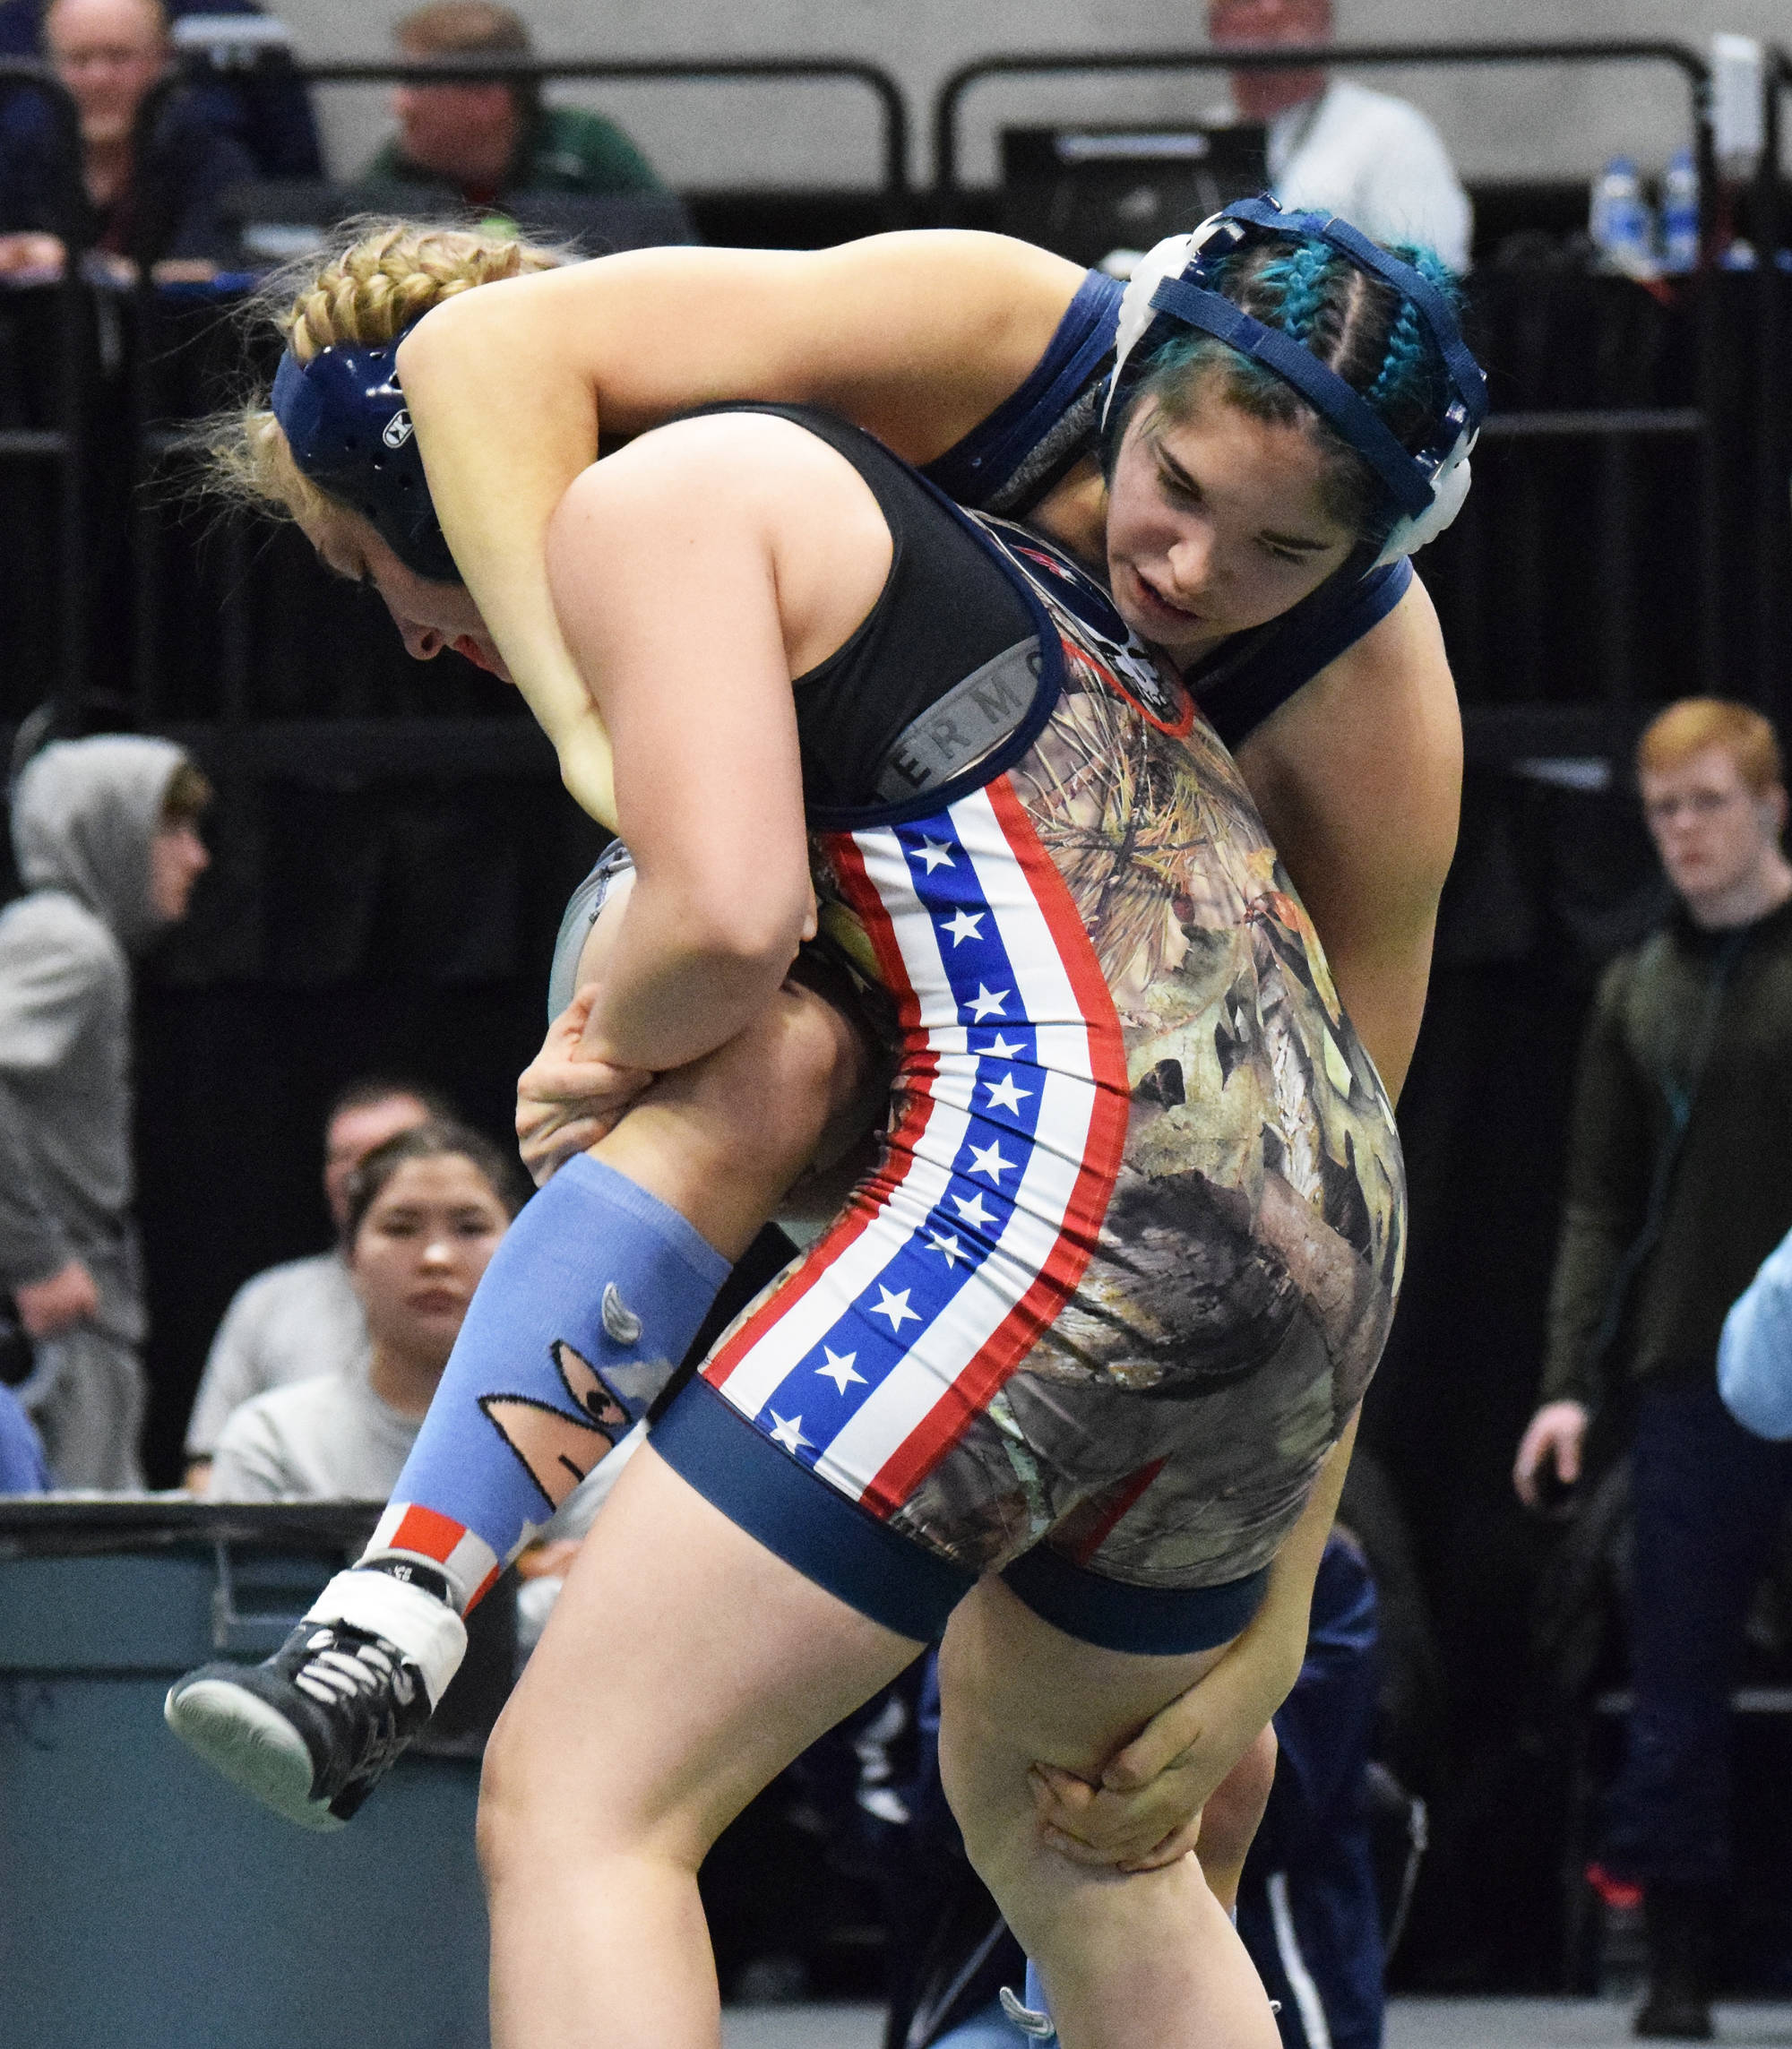 Soldotna's Trinity Donovan wrestles Emily Bellant of North Pole in the girls 145-pound final Saturday, Dec. 21, 2019, at the ASAA State Wrestling Championships at the Alaska Airlines Center in Anchorage, Alaska. (Photo by Joey Klecka/Peninsula Clarion)